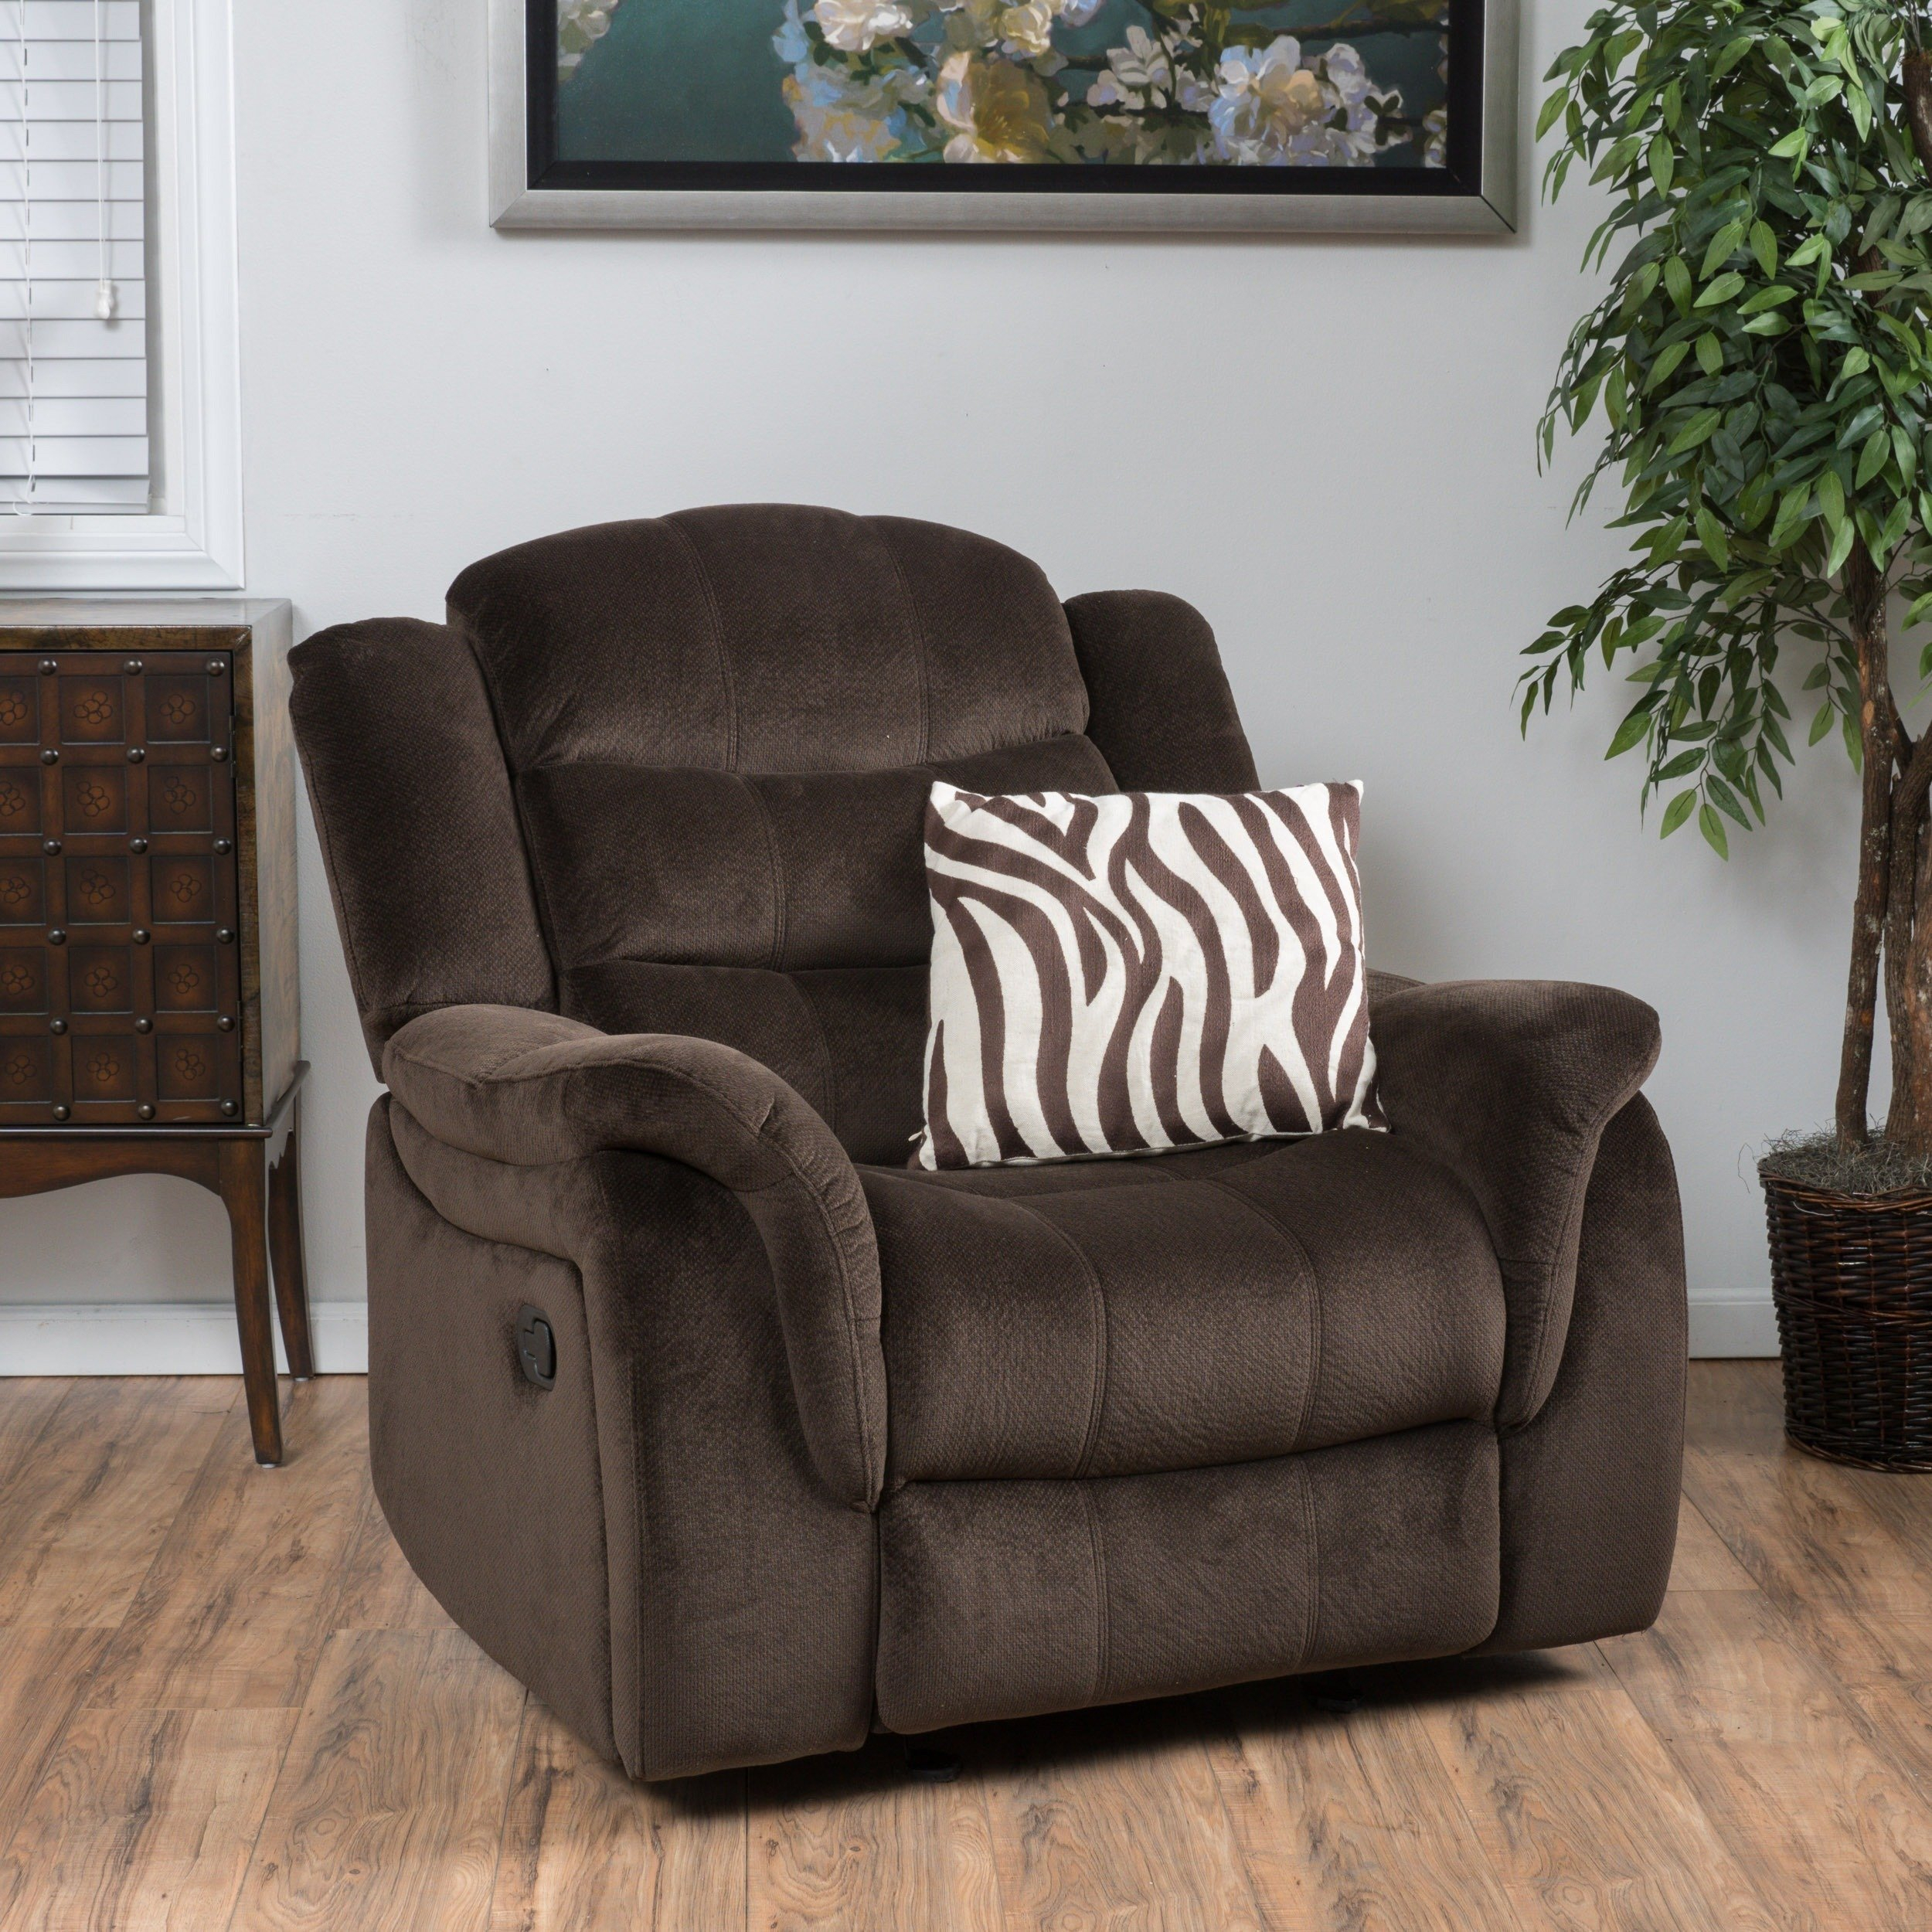 Buy Brown Christopher Knight Home Living Room Chairs Online At Throughout Dale Iii Polyurethane Swivel Glider Recliners (Image 6 of 25)